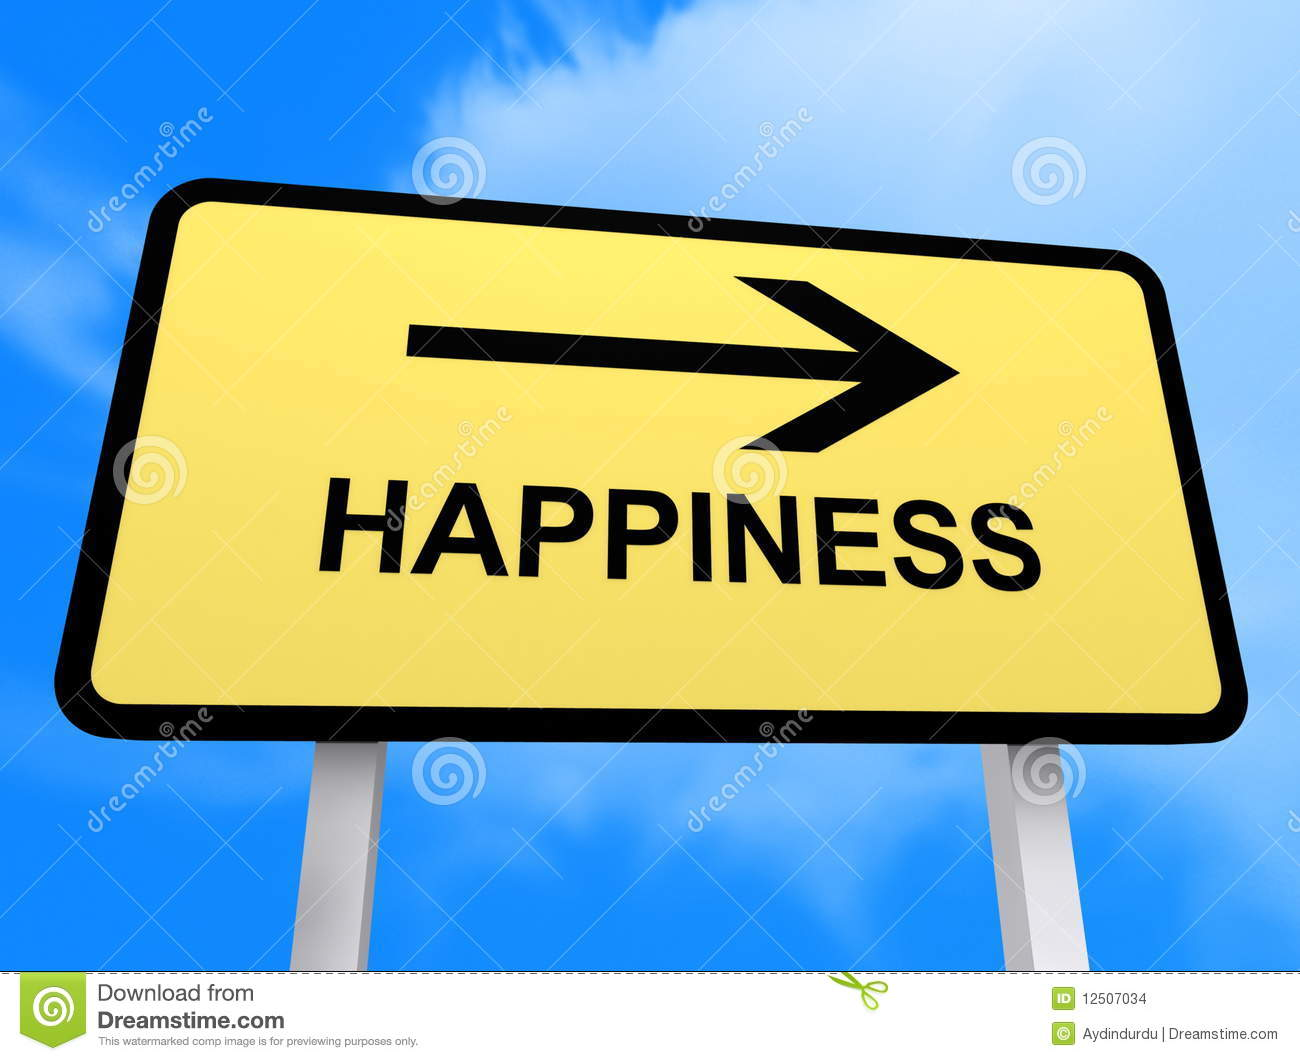 Happiness Sign Stock Images  Image 12507034